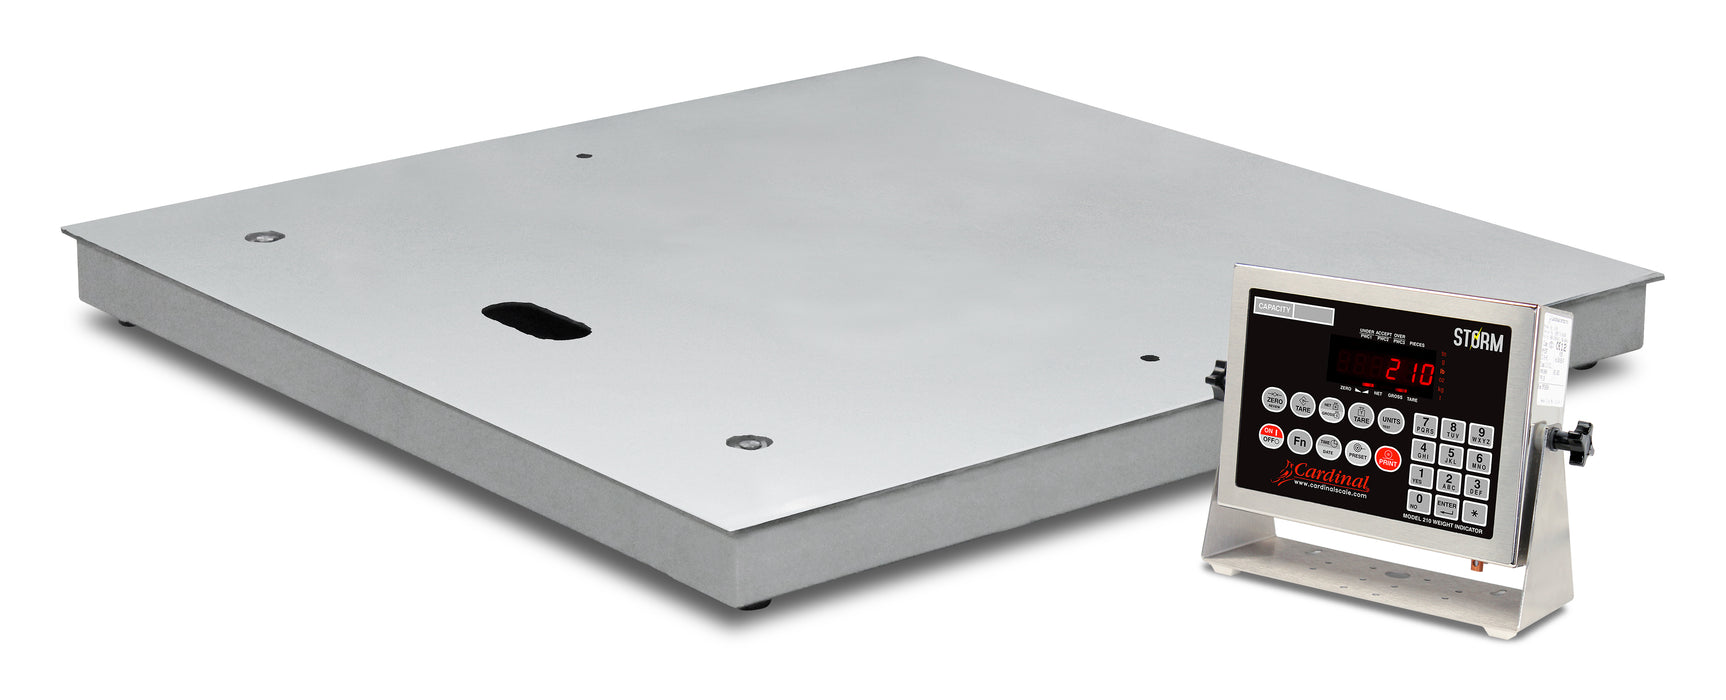 Cardinal Electronic Floor Scales with Gas-Assisted Lift Decks